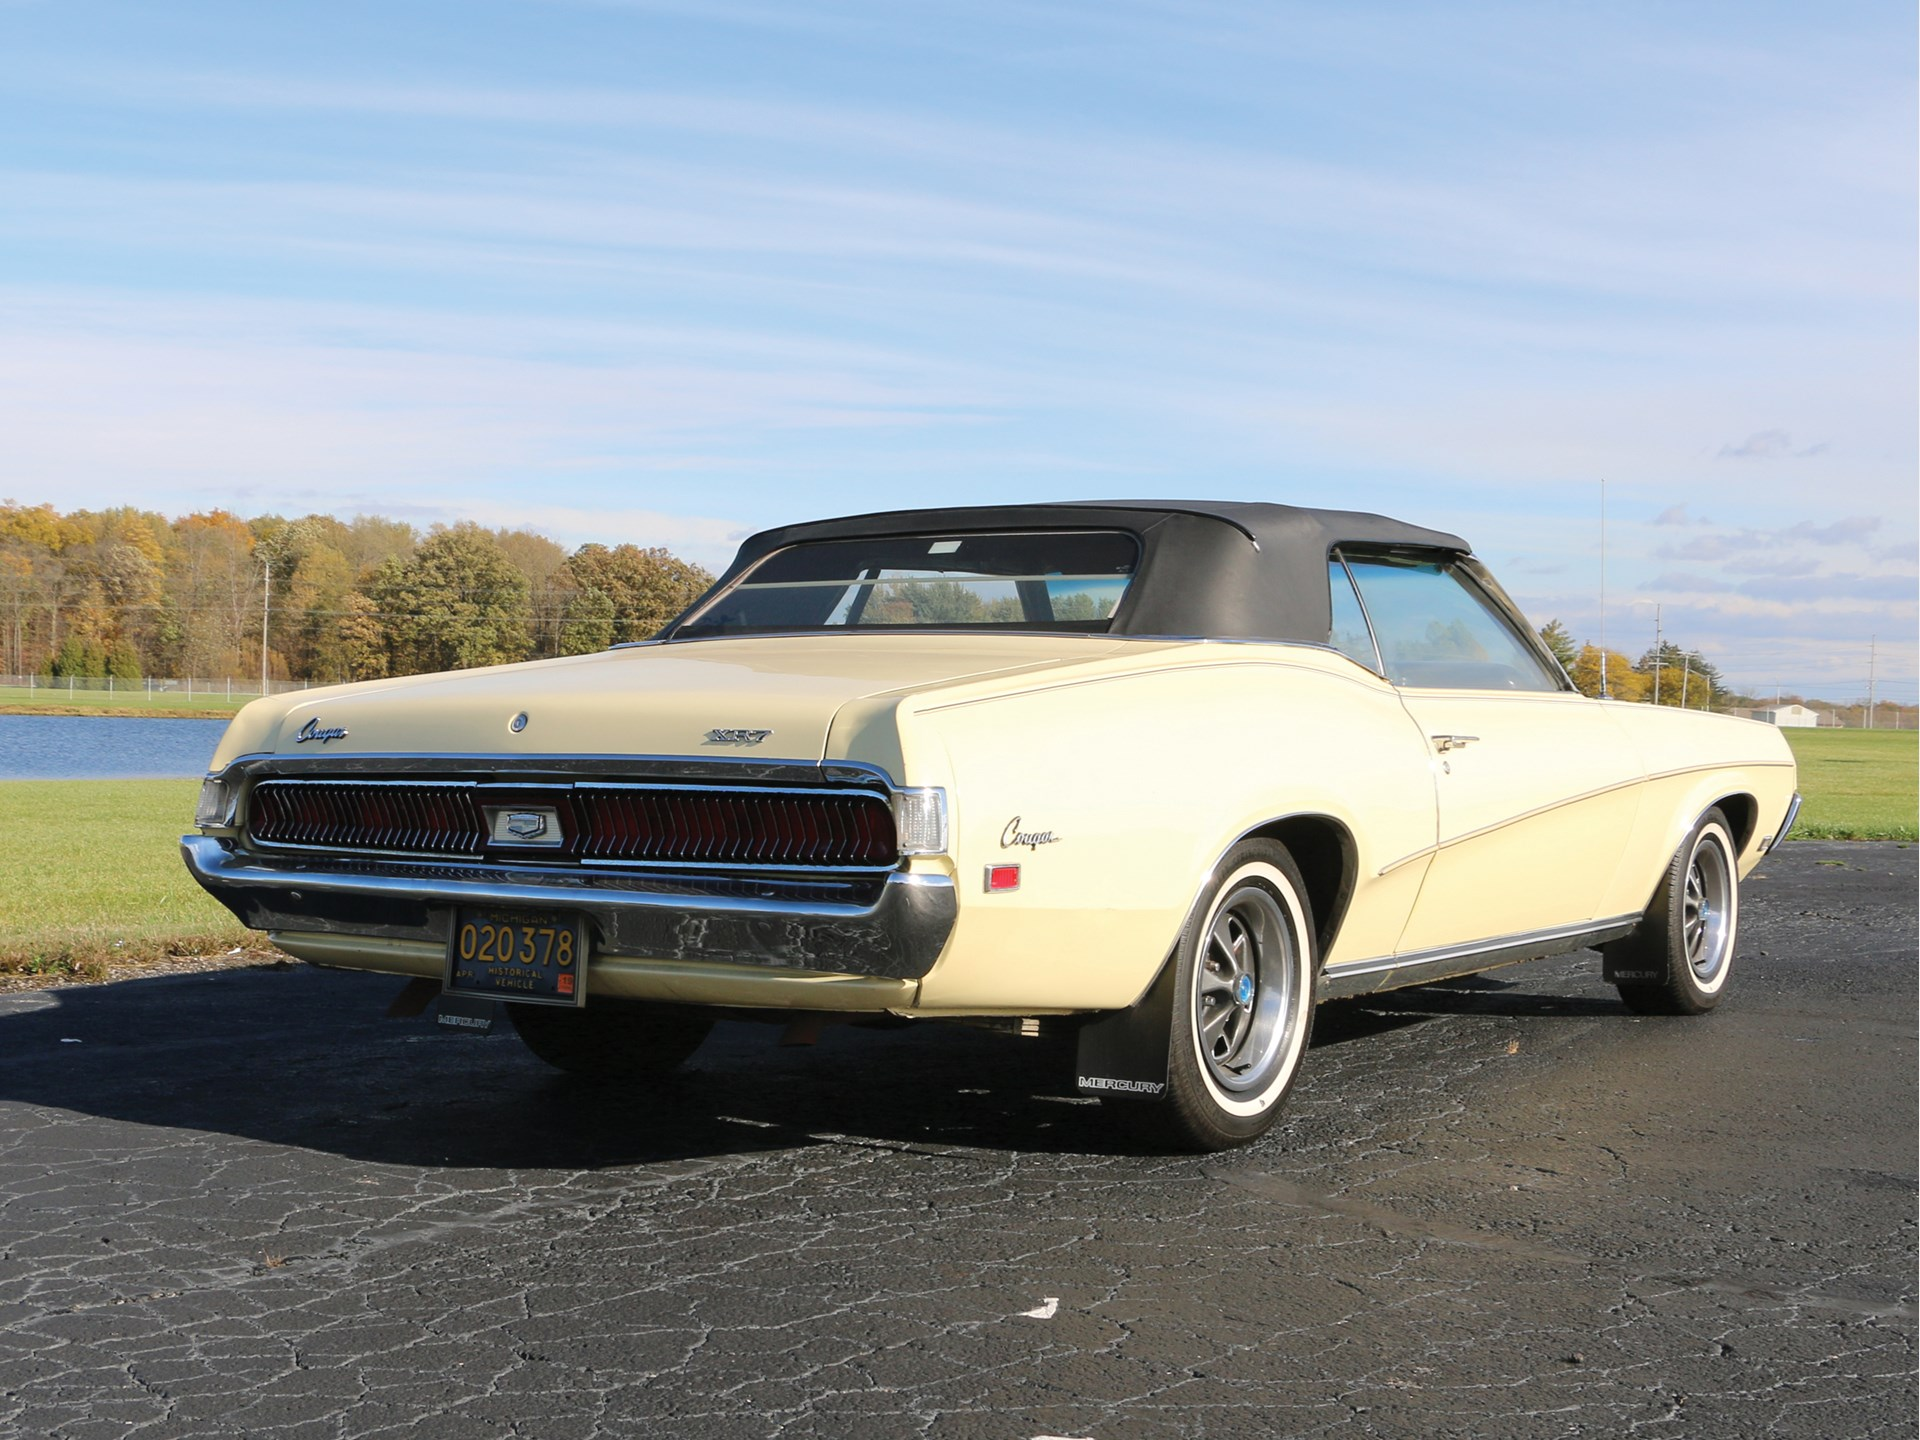 RM Sotheby's - 1969 Mercury Cougar 428 Cobra Jet Convertible